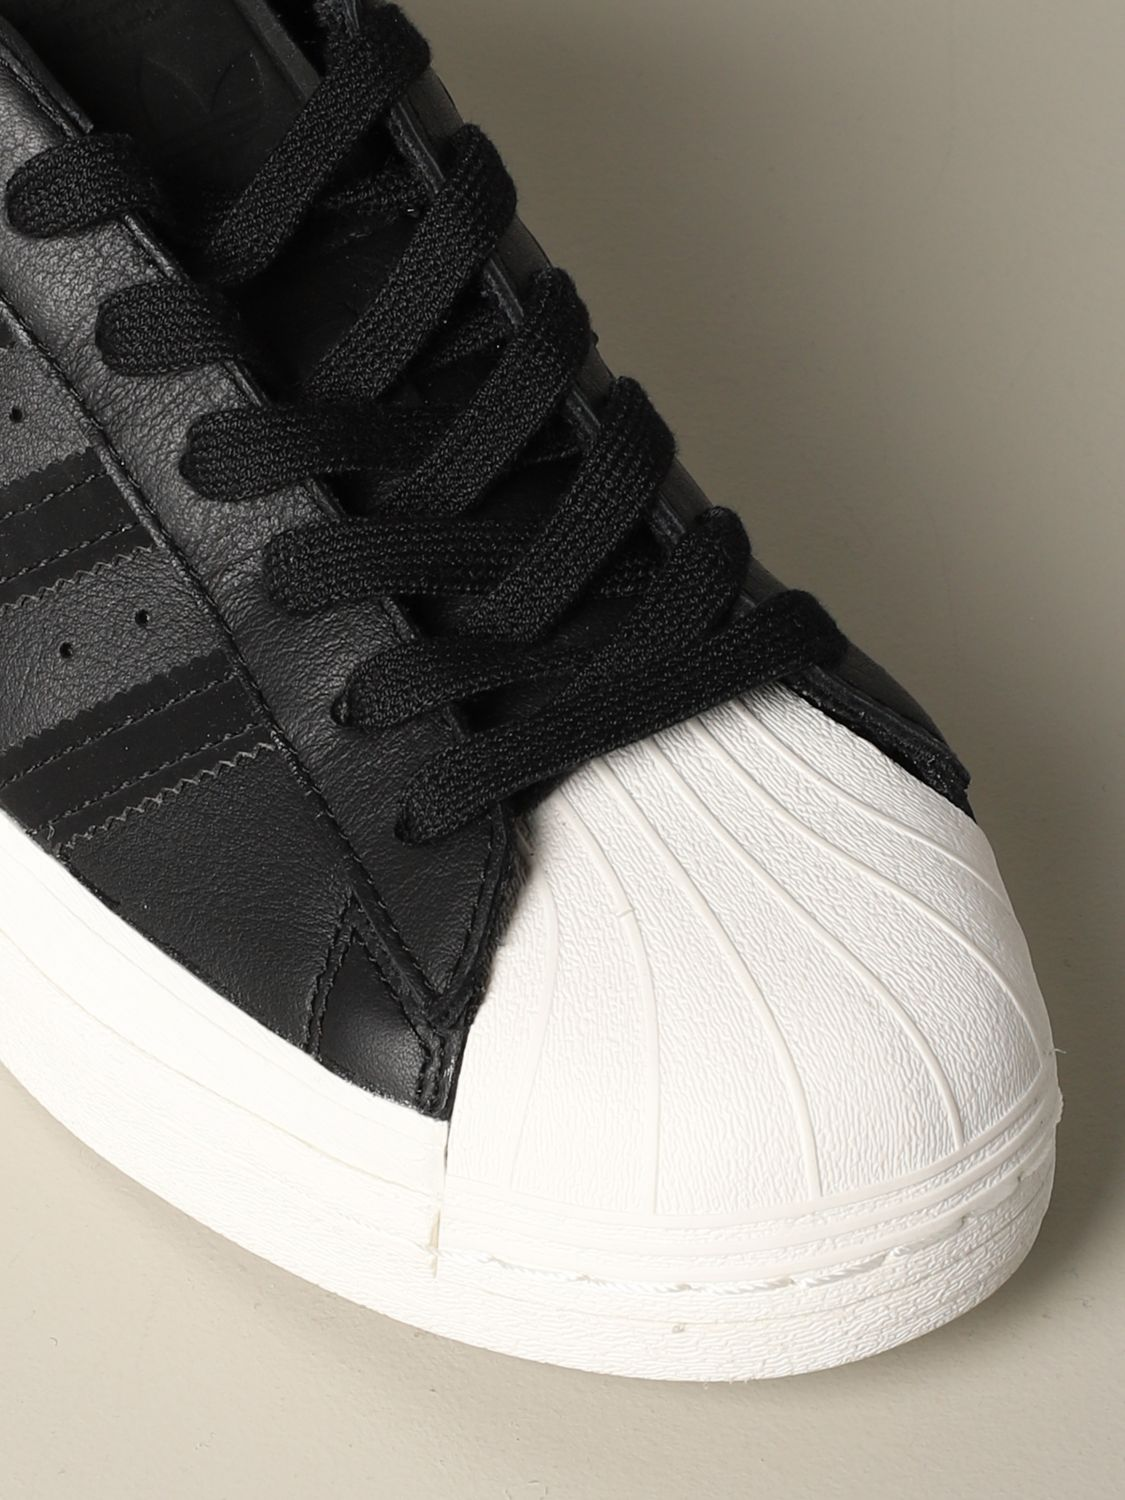 运动鞋 Adidas Originals: Adidas Originals Superstar logo 真皮运动鞋 黑色 4